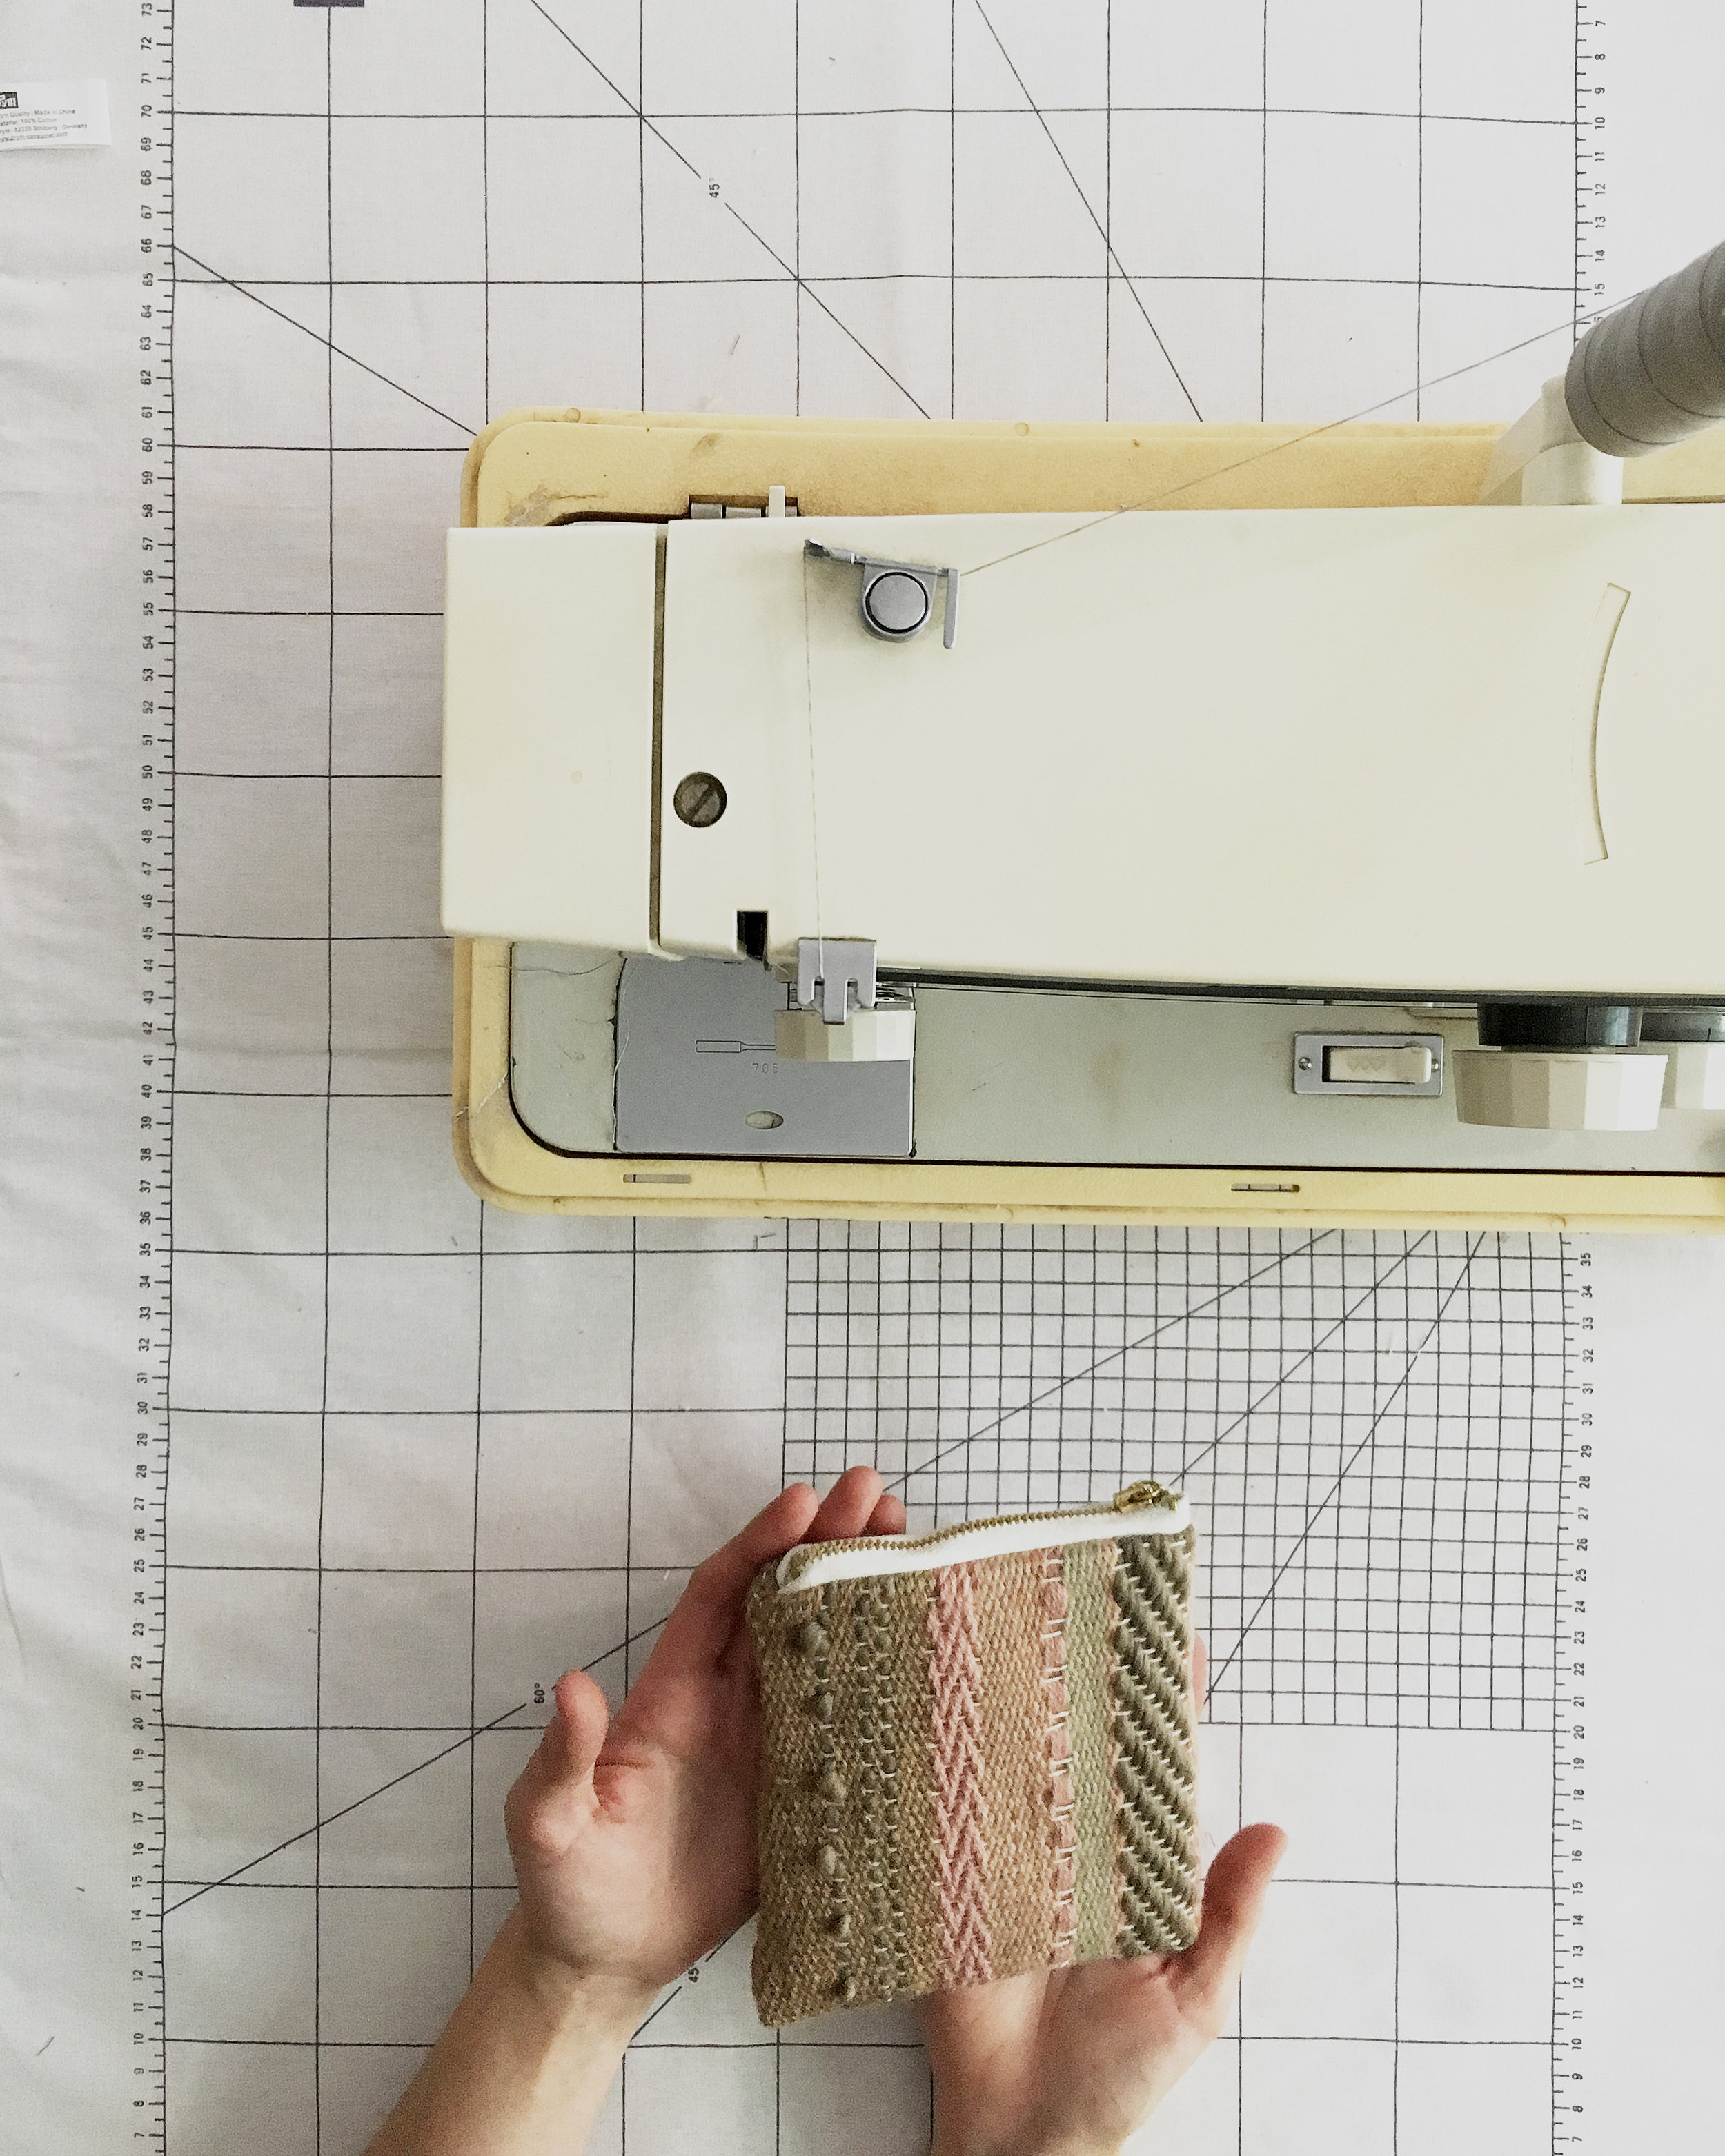 Sewing the handwoven fabric - a step-by-step tutorial #handwoven #pouch #sewing #weaving #tutorial